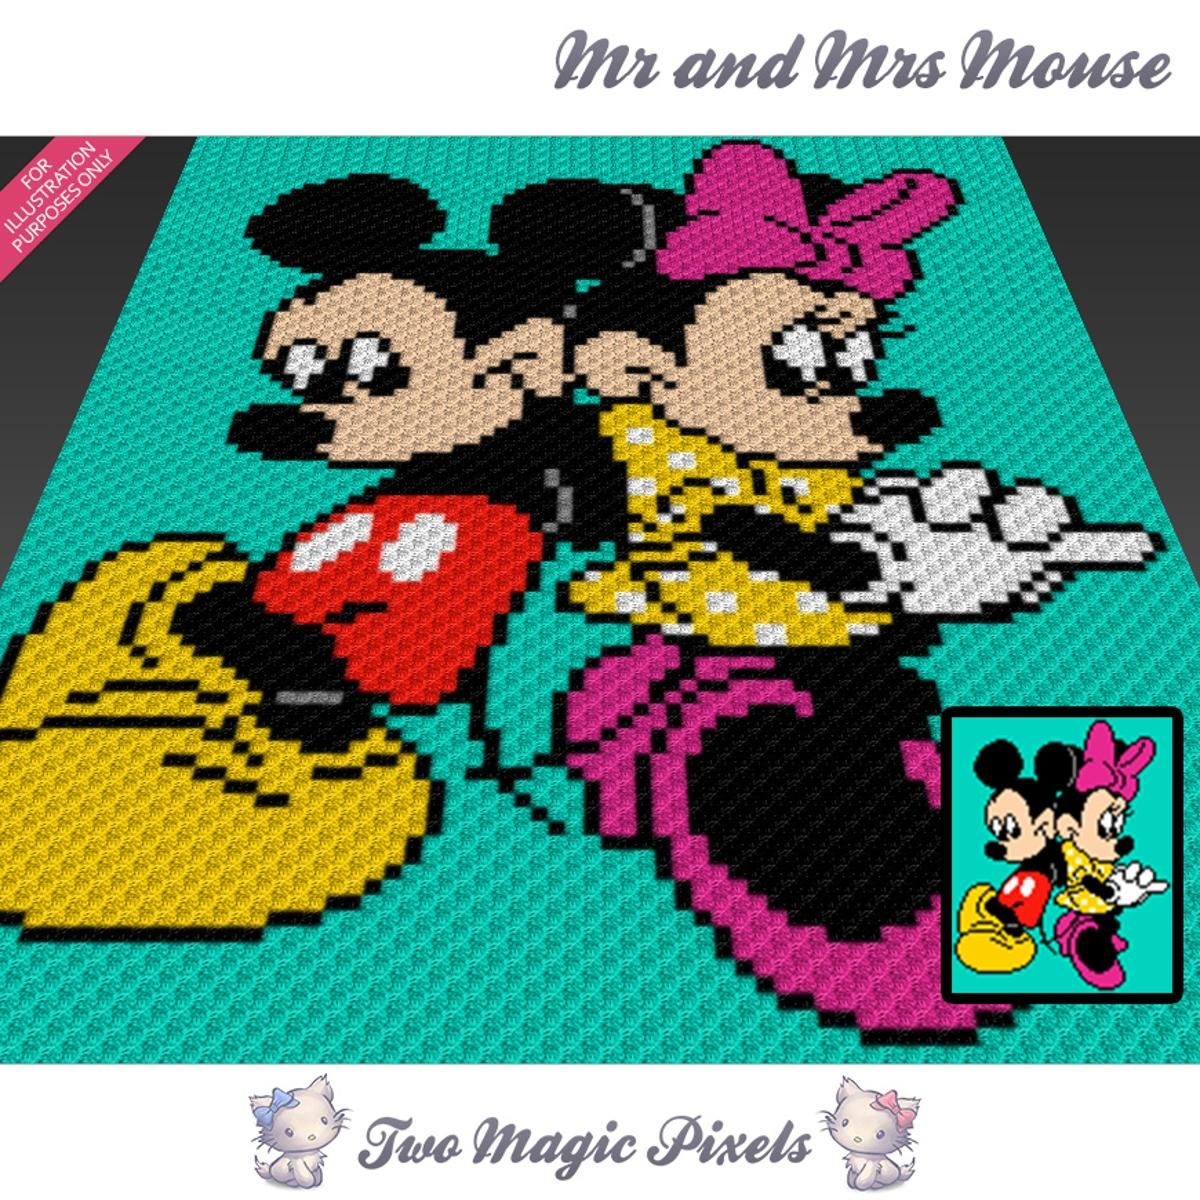 Mr and Mrs Mouse C2C Crochet Graph